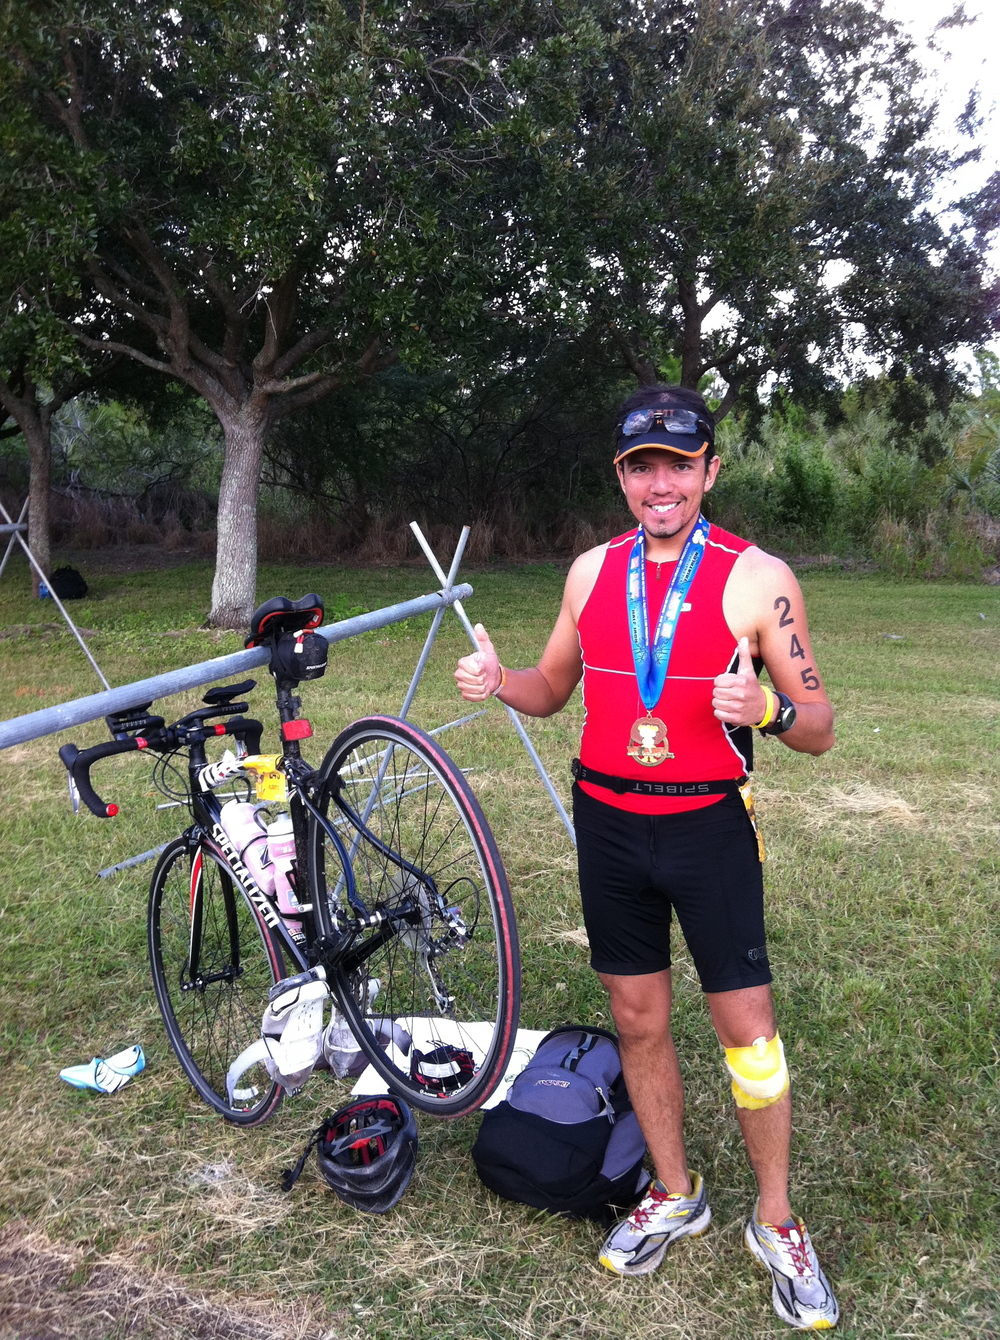 Nov 14, 2010: First Half Iron distance triathlon, Miami Man. Busted my knee, and finished the race walking.